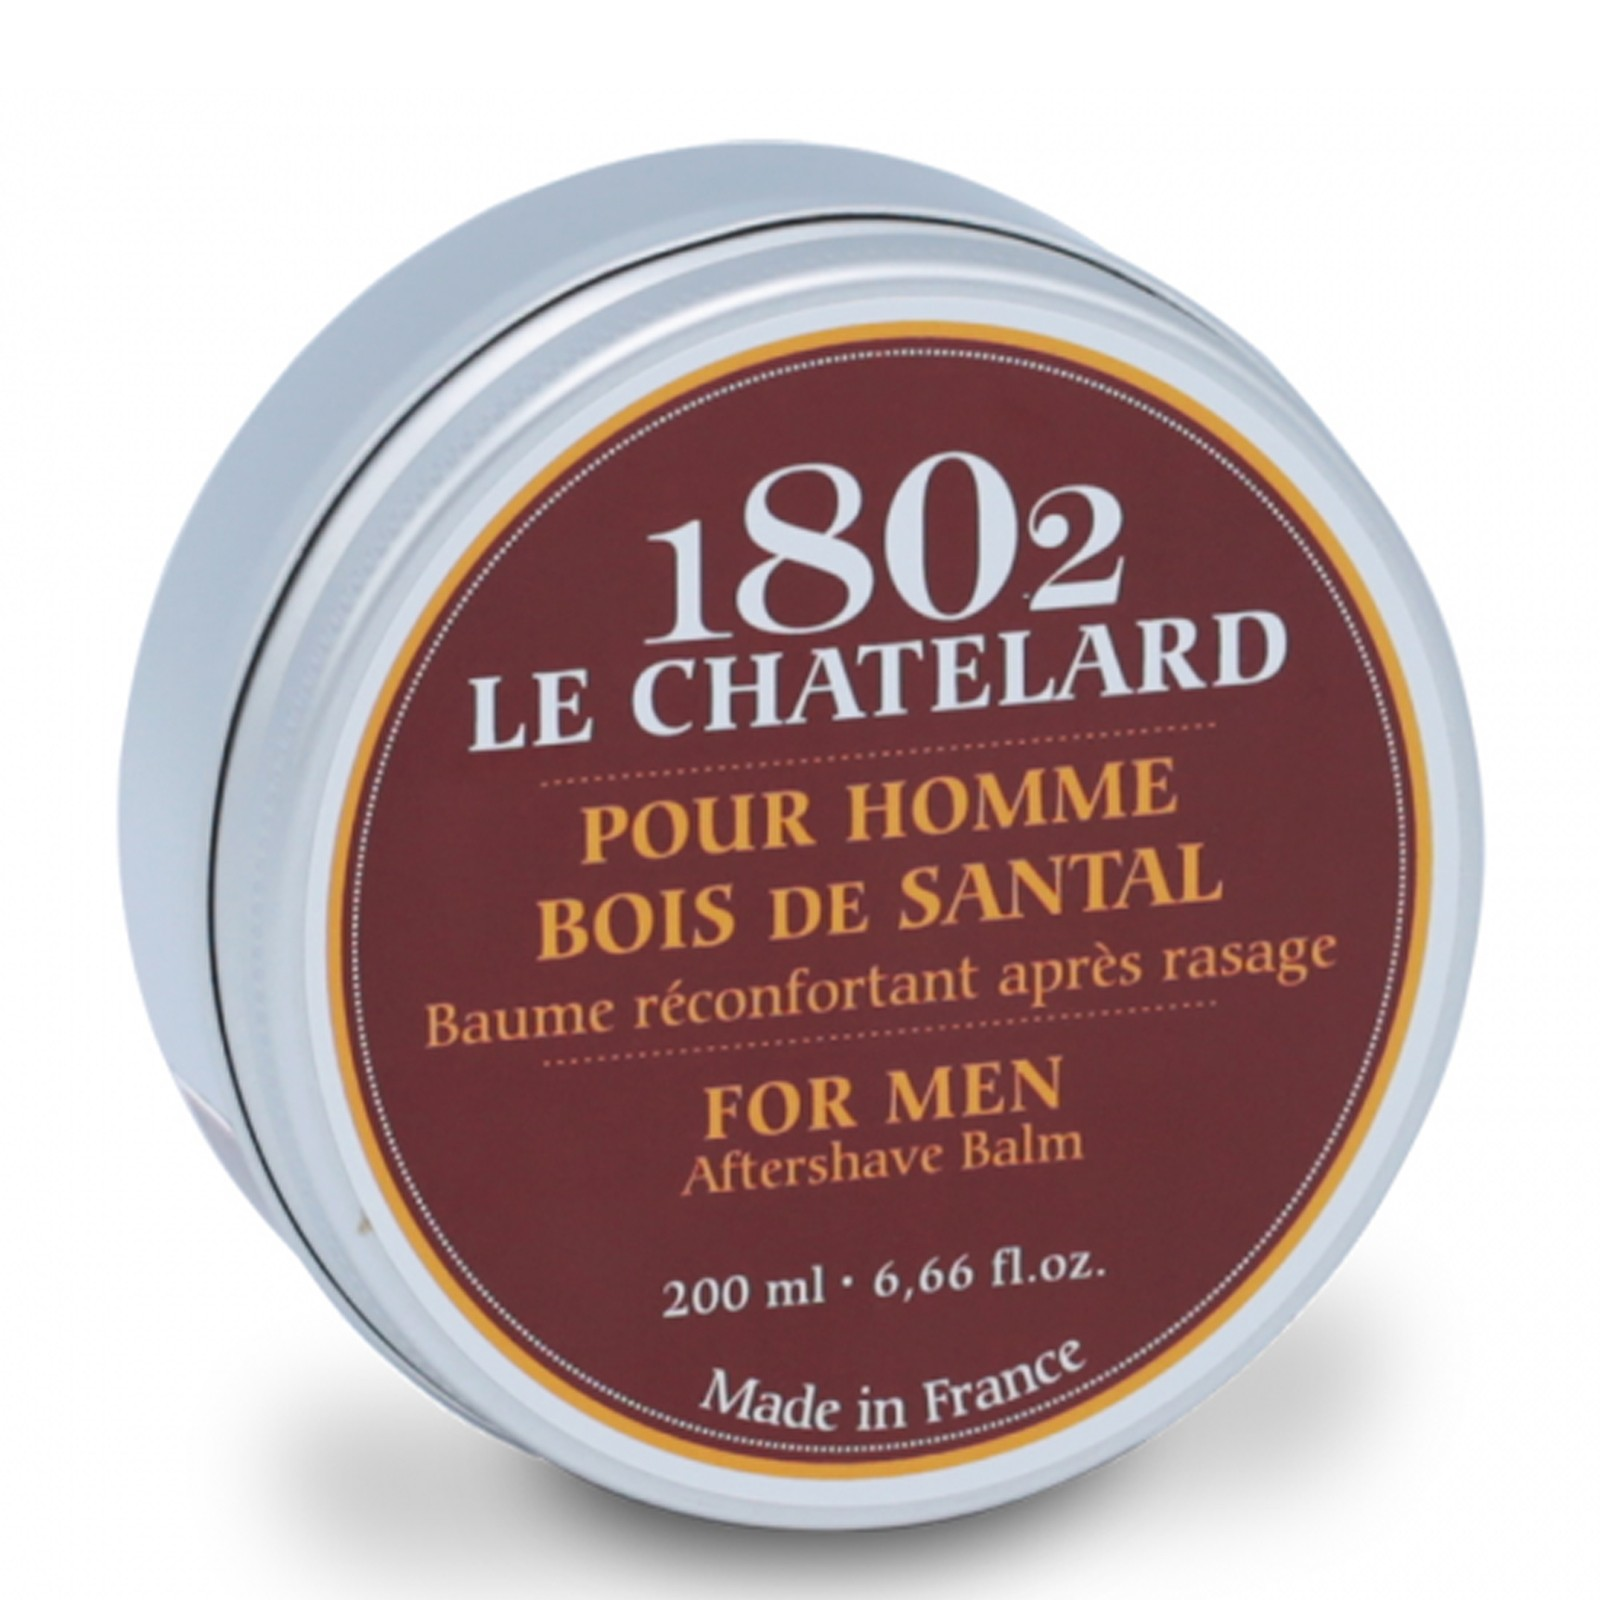 Le Chatelard 1802 Men's Sandalwood Aftershave Balm